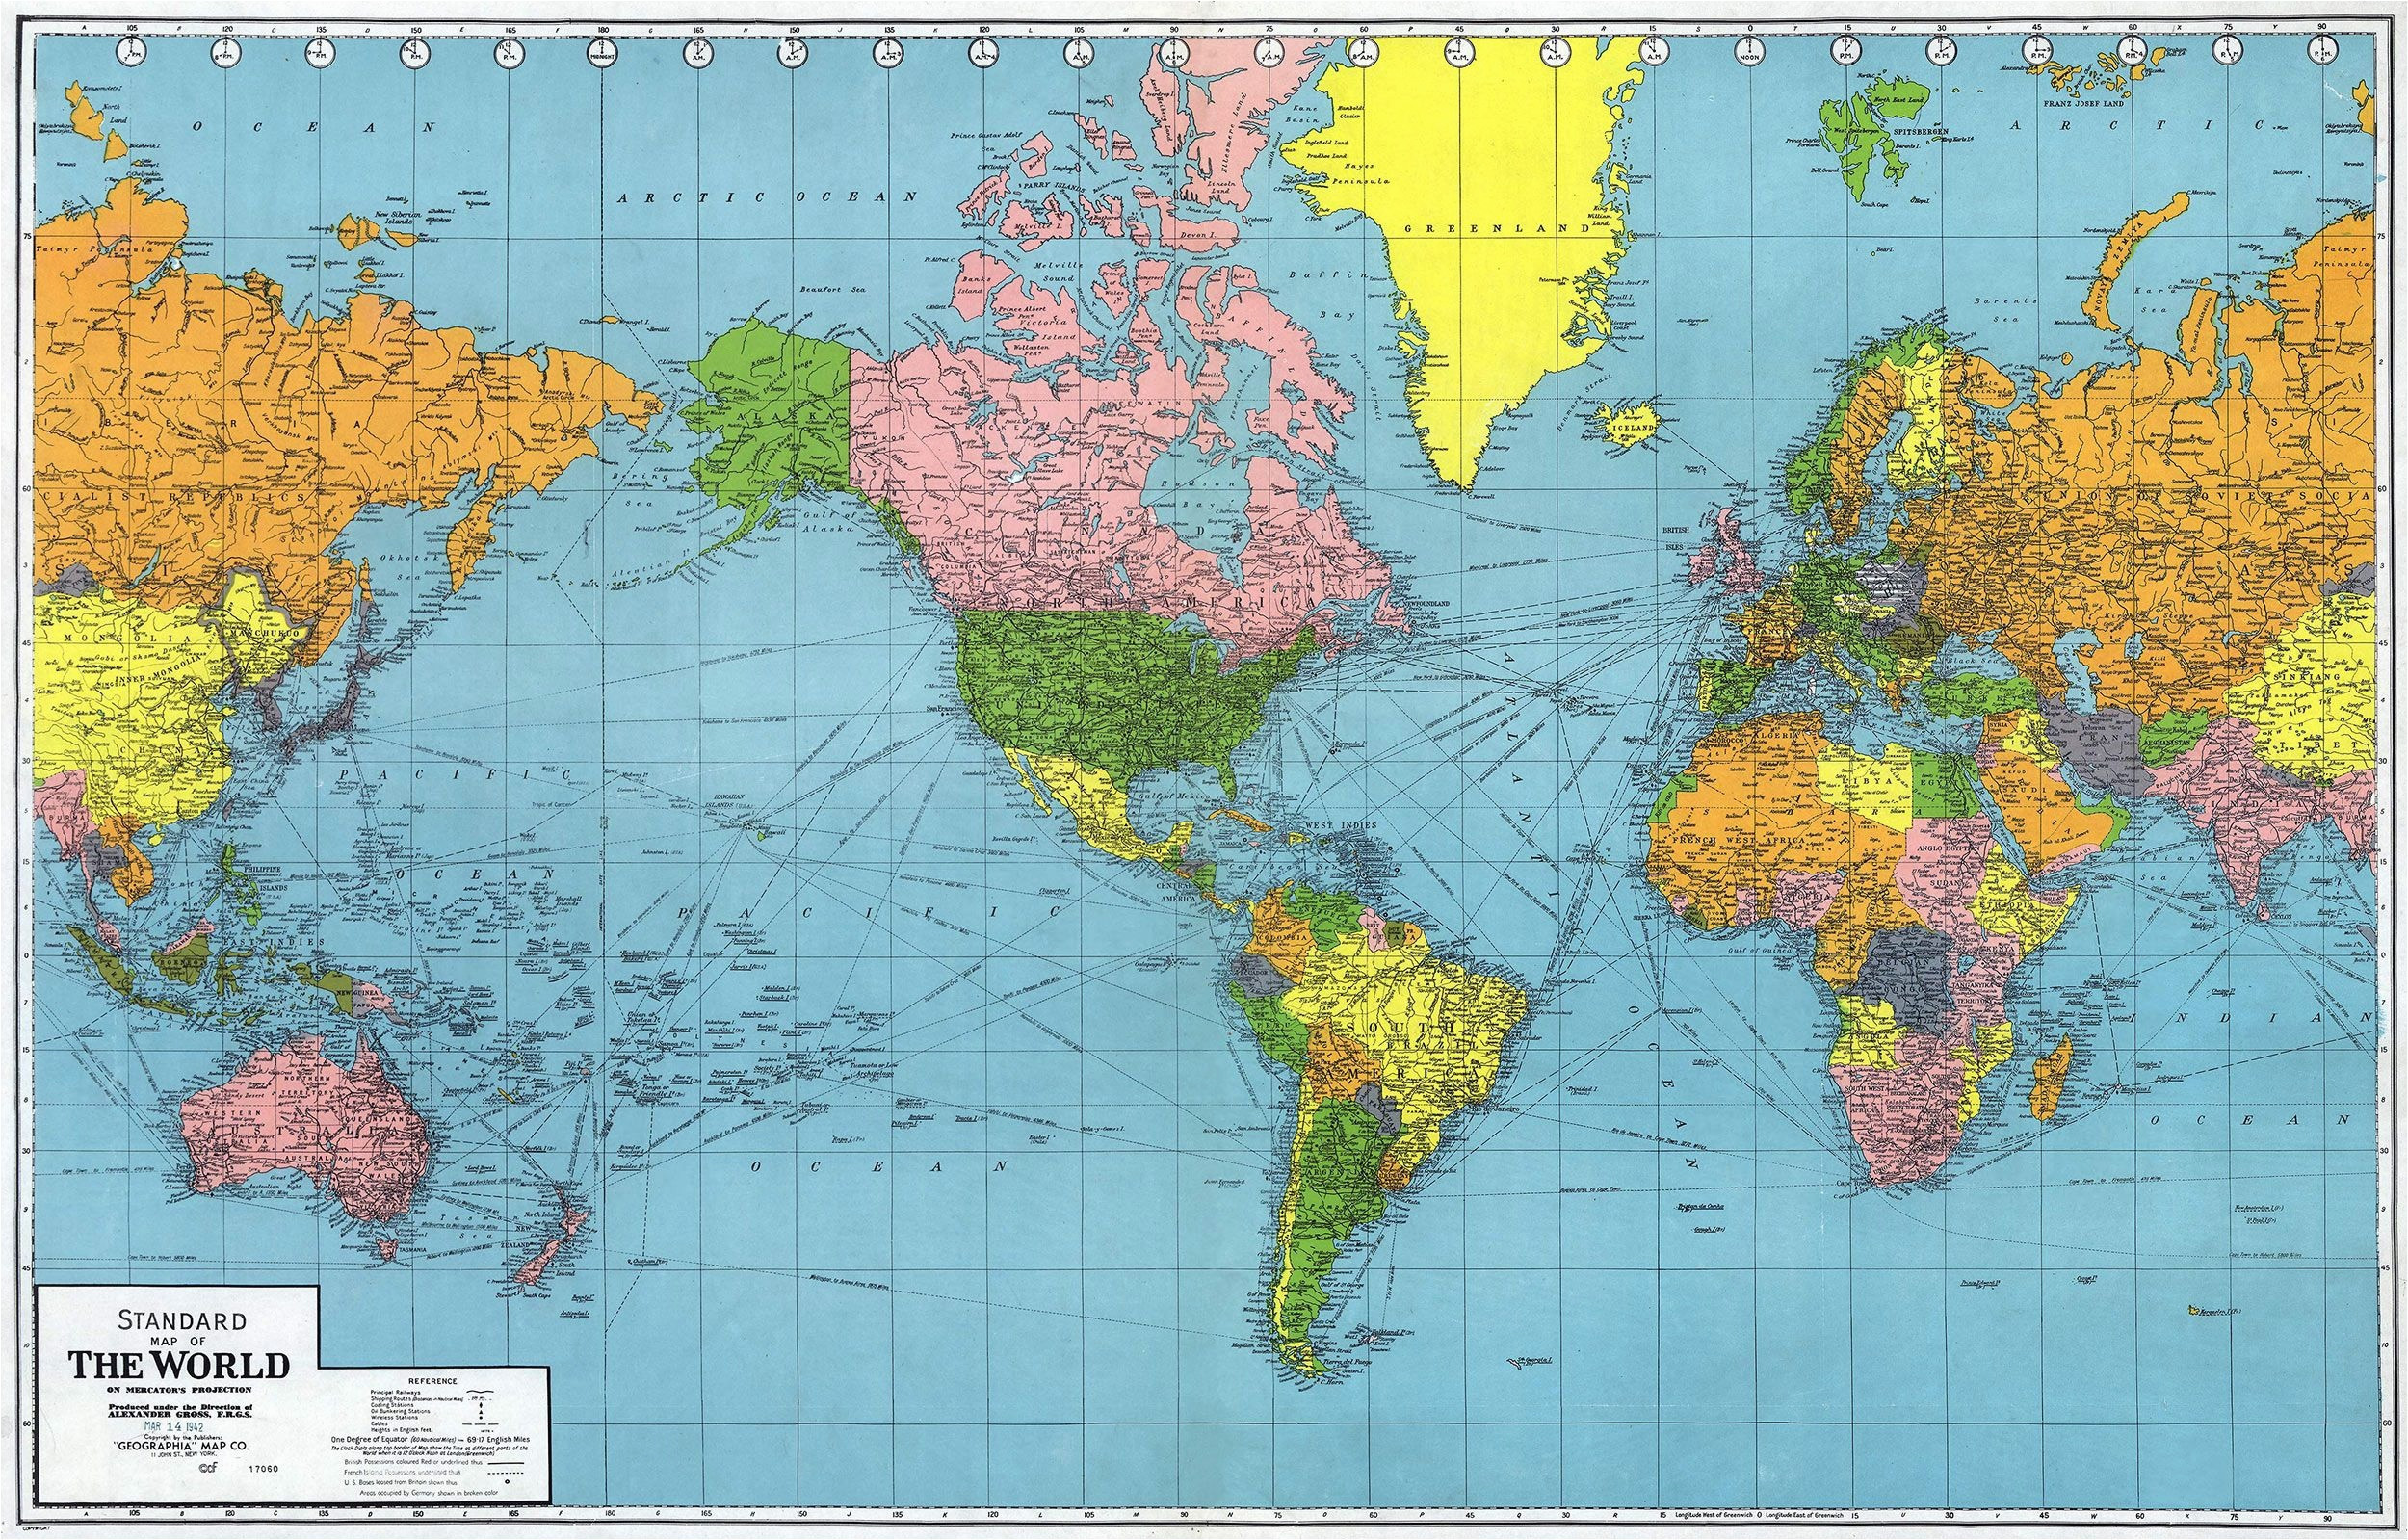 World Map Time Zones Wallpaper (52+ images)